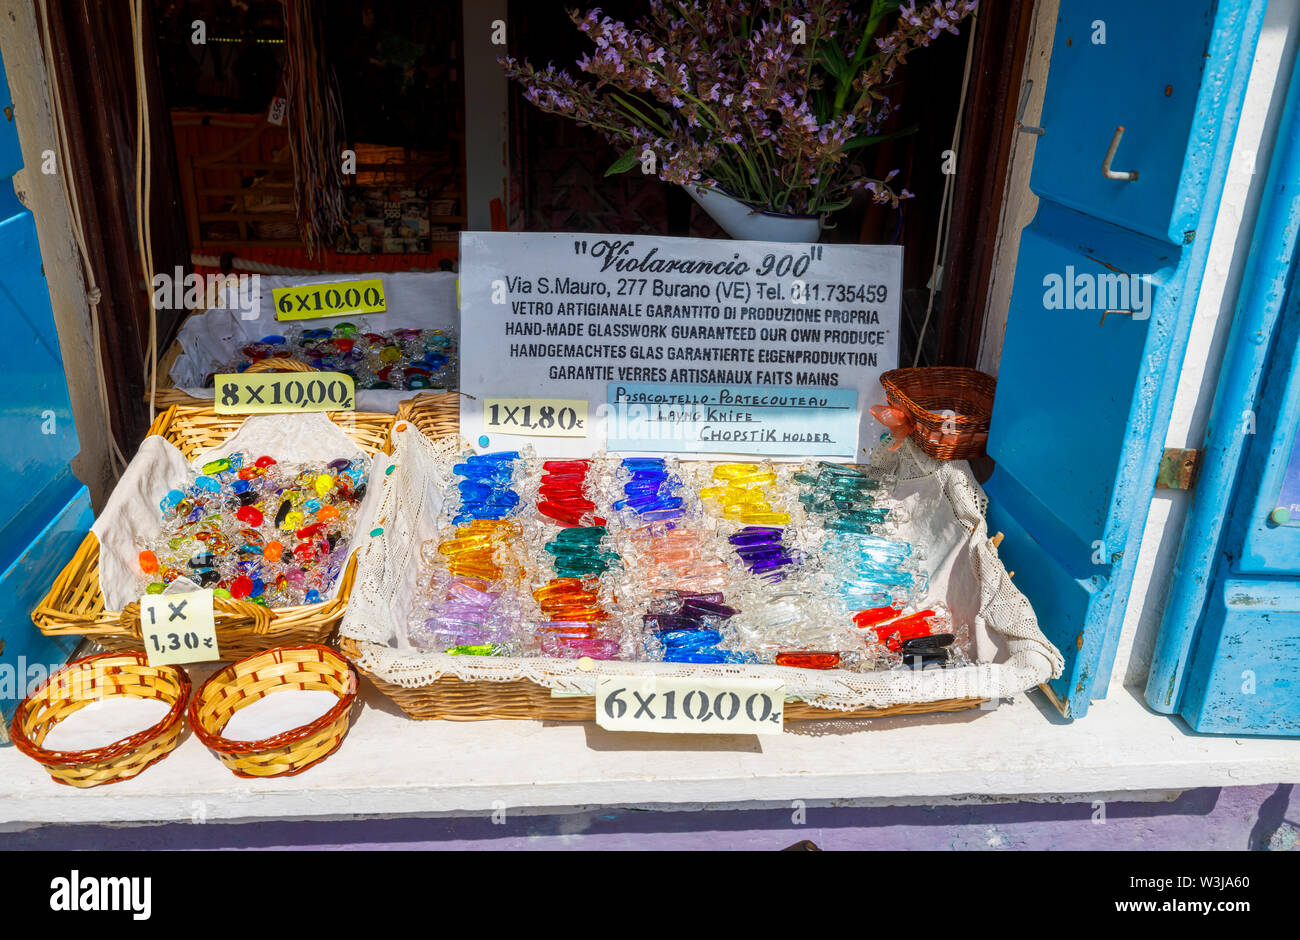 Display of gemstones and coloured glass for sale as tourist souvenirs in a typical roadside souvenir shop in Burano, a small island in Venice Lagoon - Stock Image